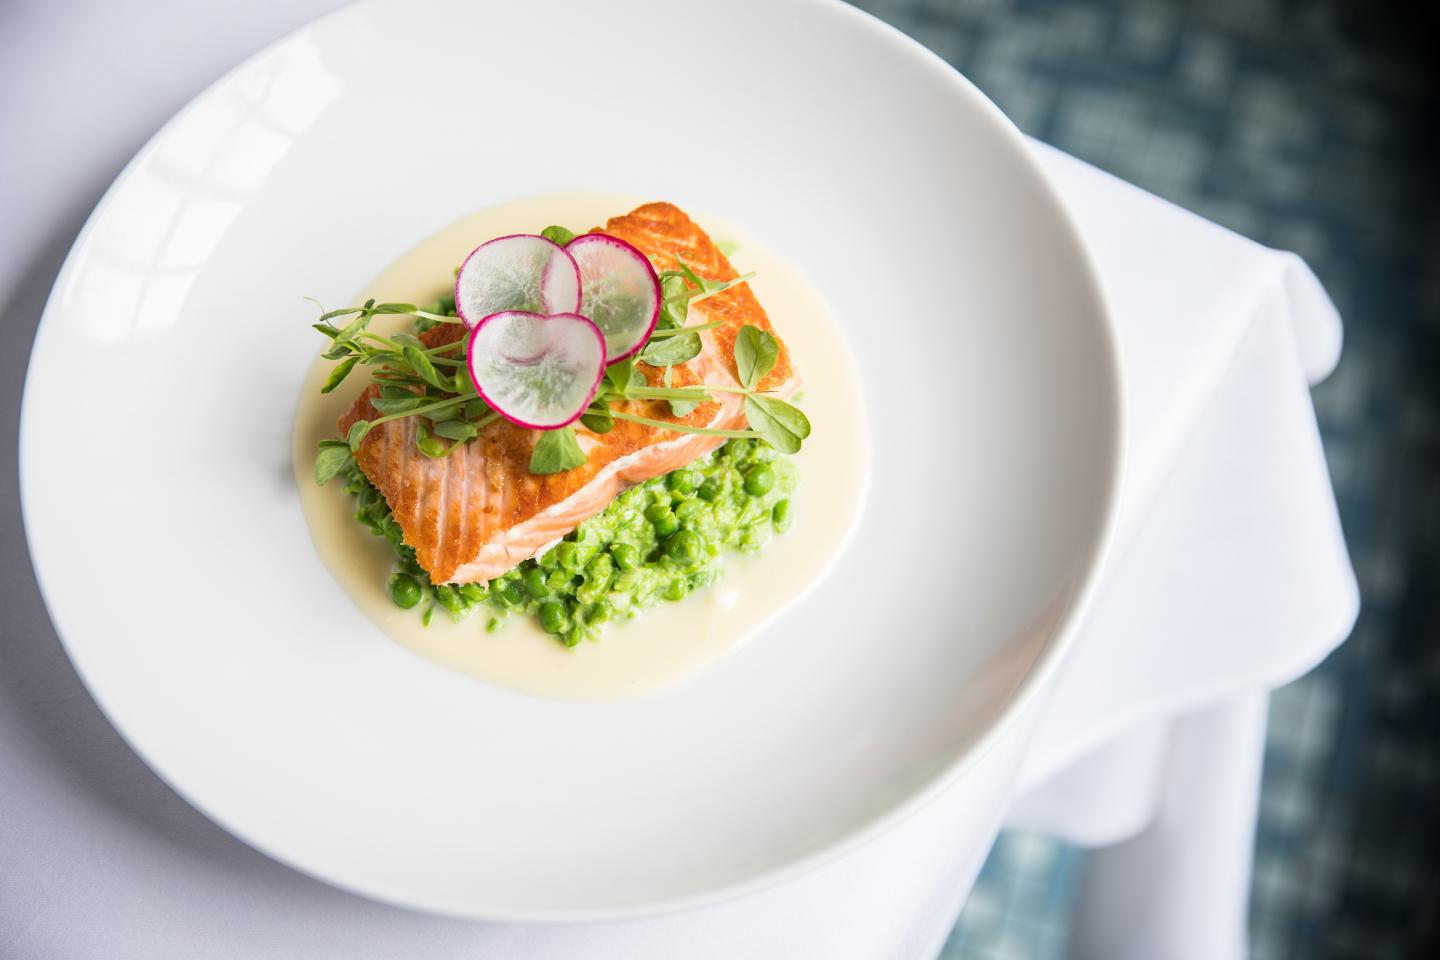 Mon Ami Gabi's atlantic salmon with mashed peas